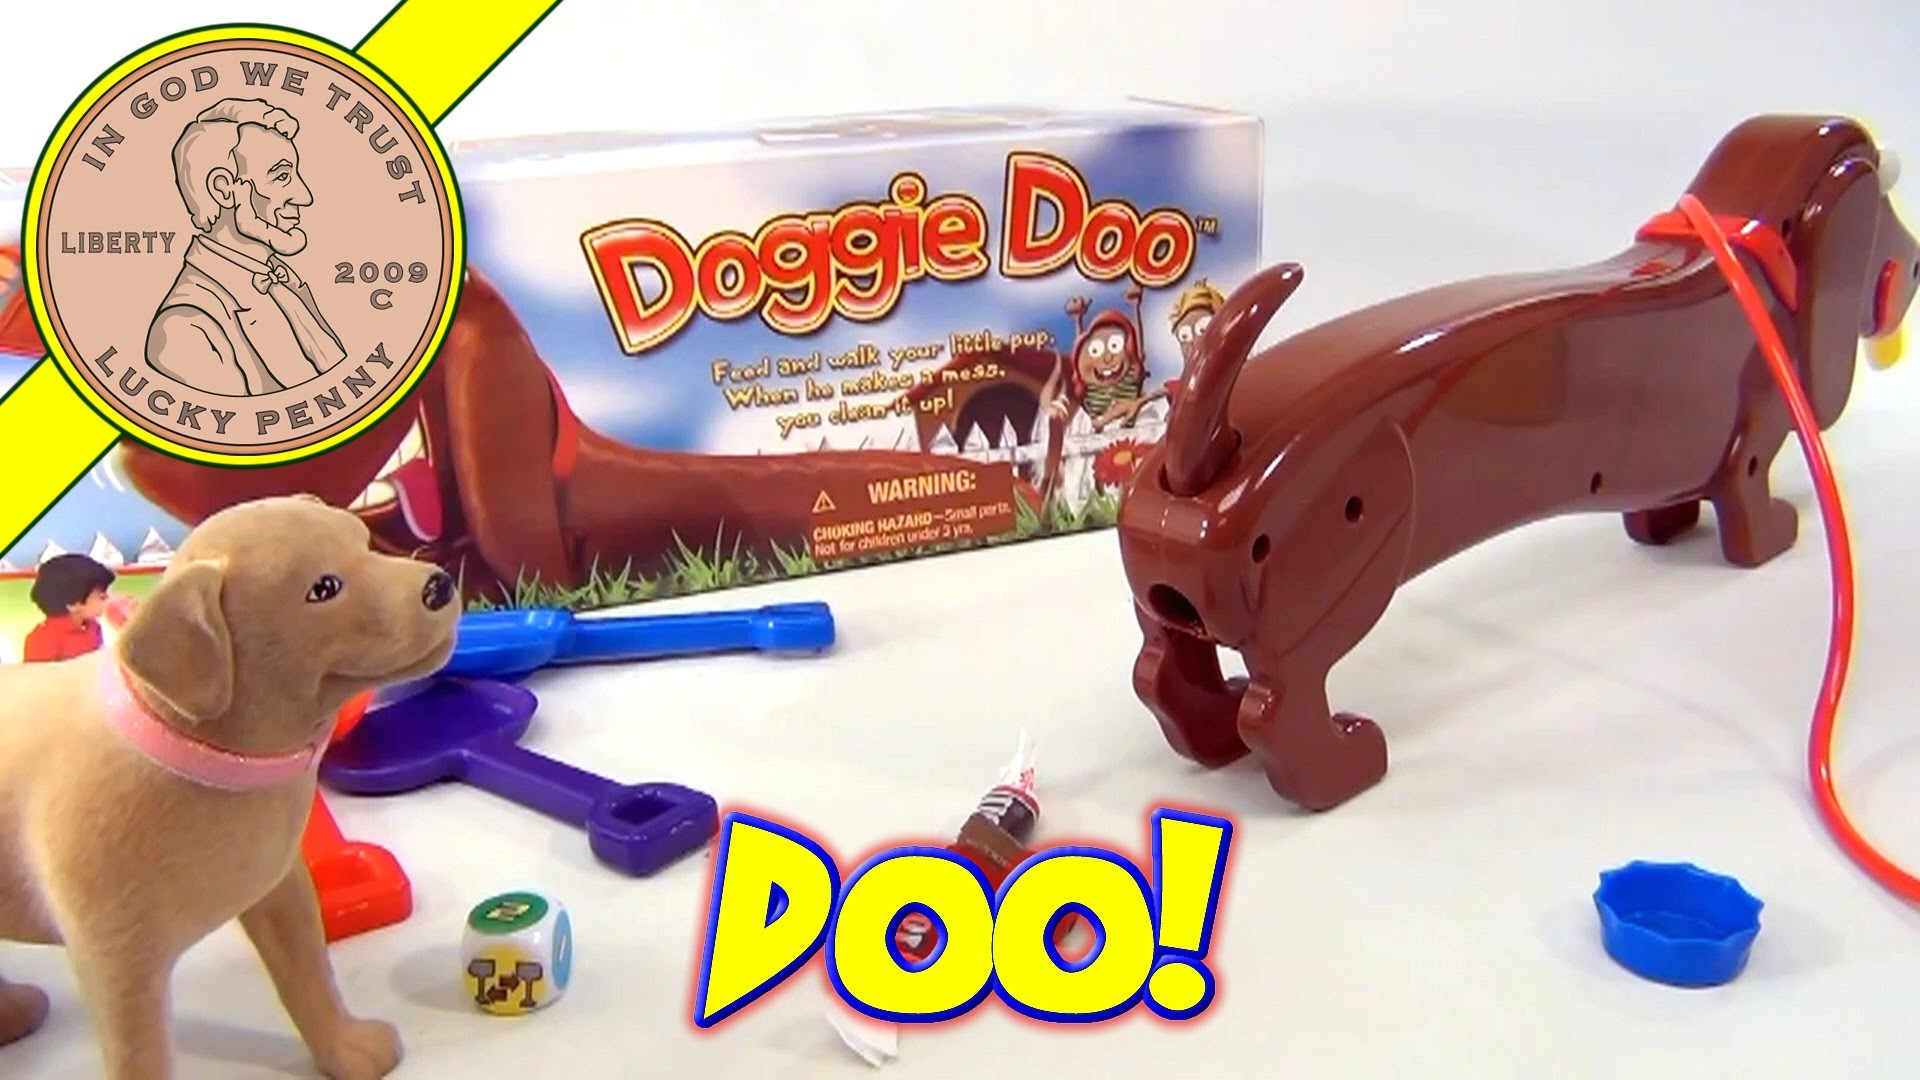 Doggie Doo The Pooping Dog Game, Goliath Games